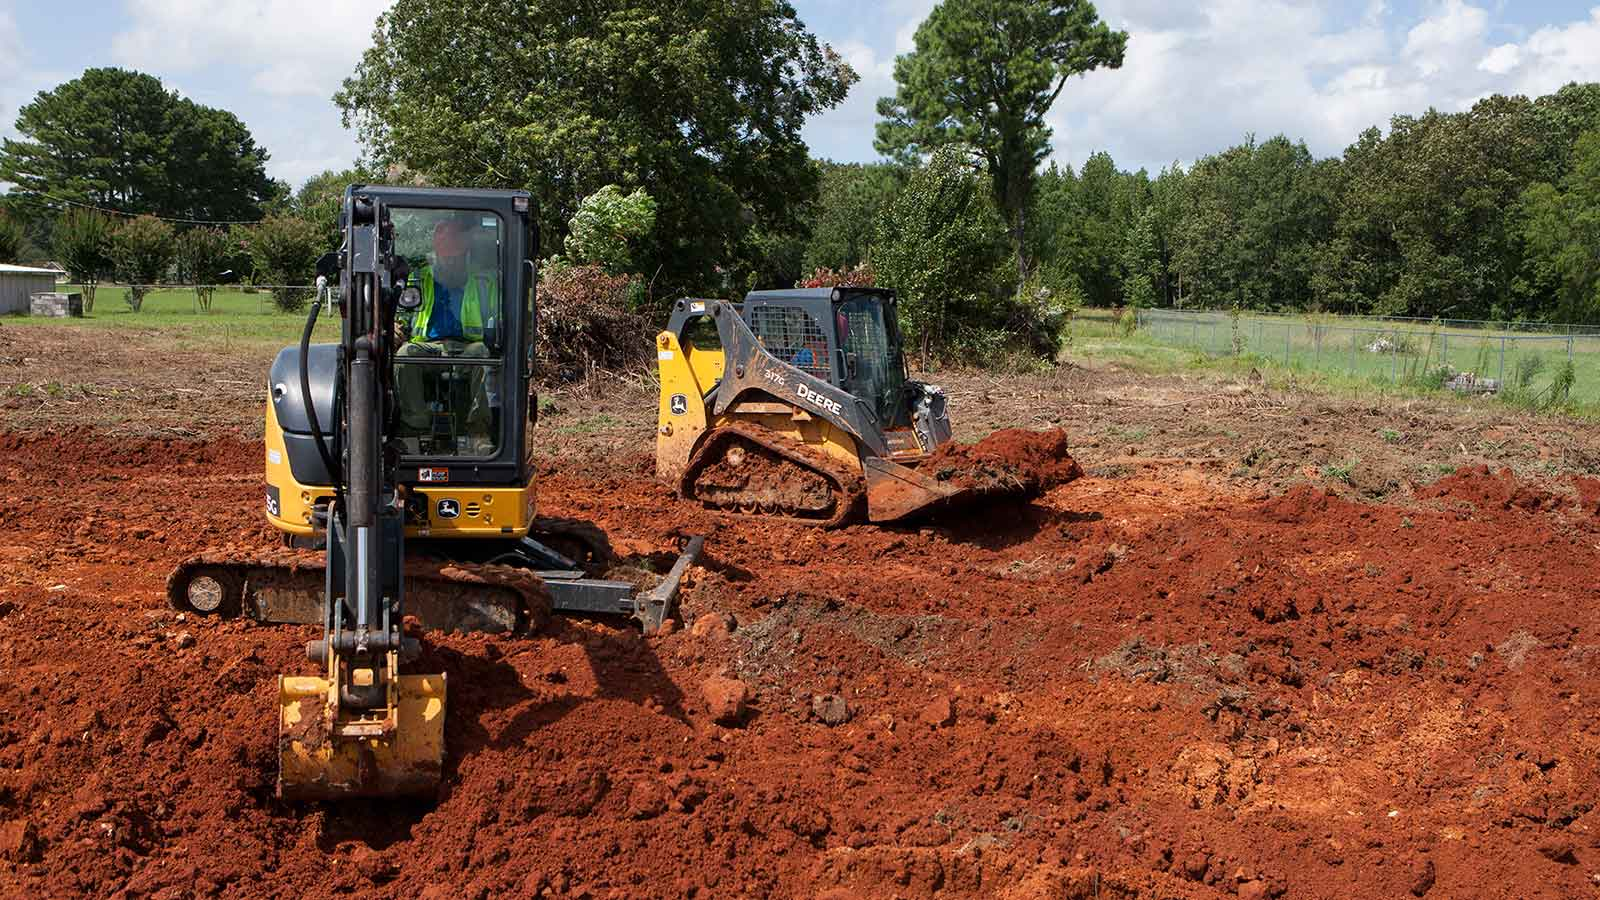 A John Deere compact track loader and mini excavator on a jobsite.